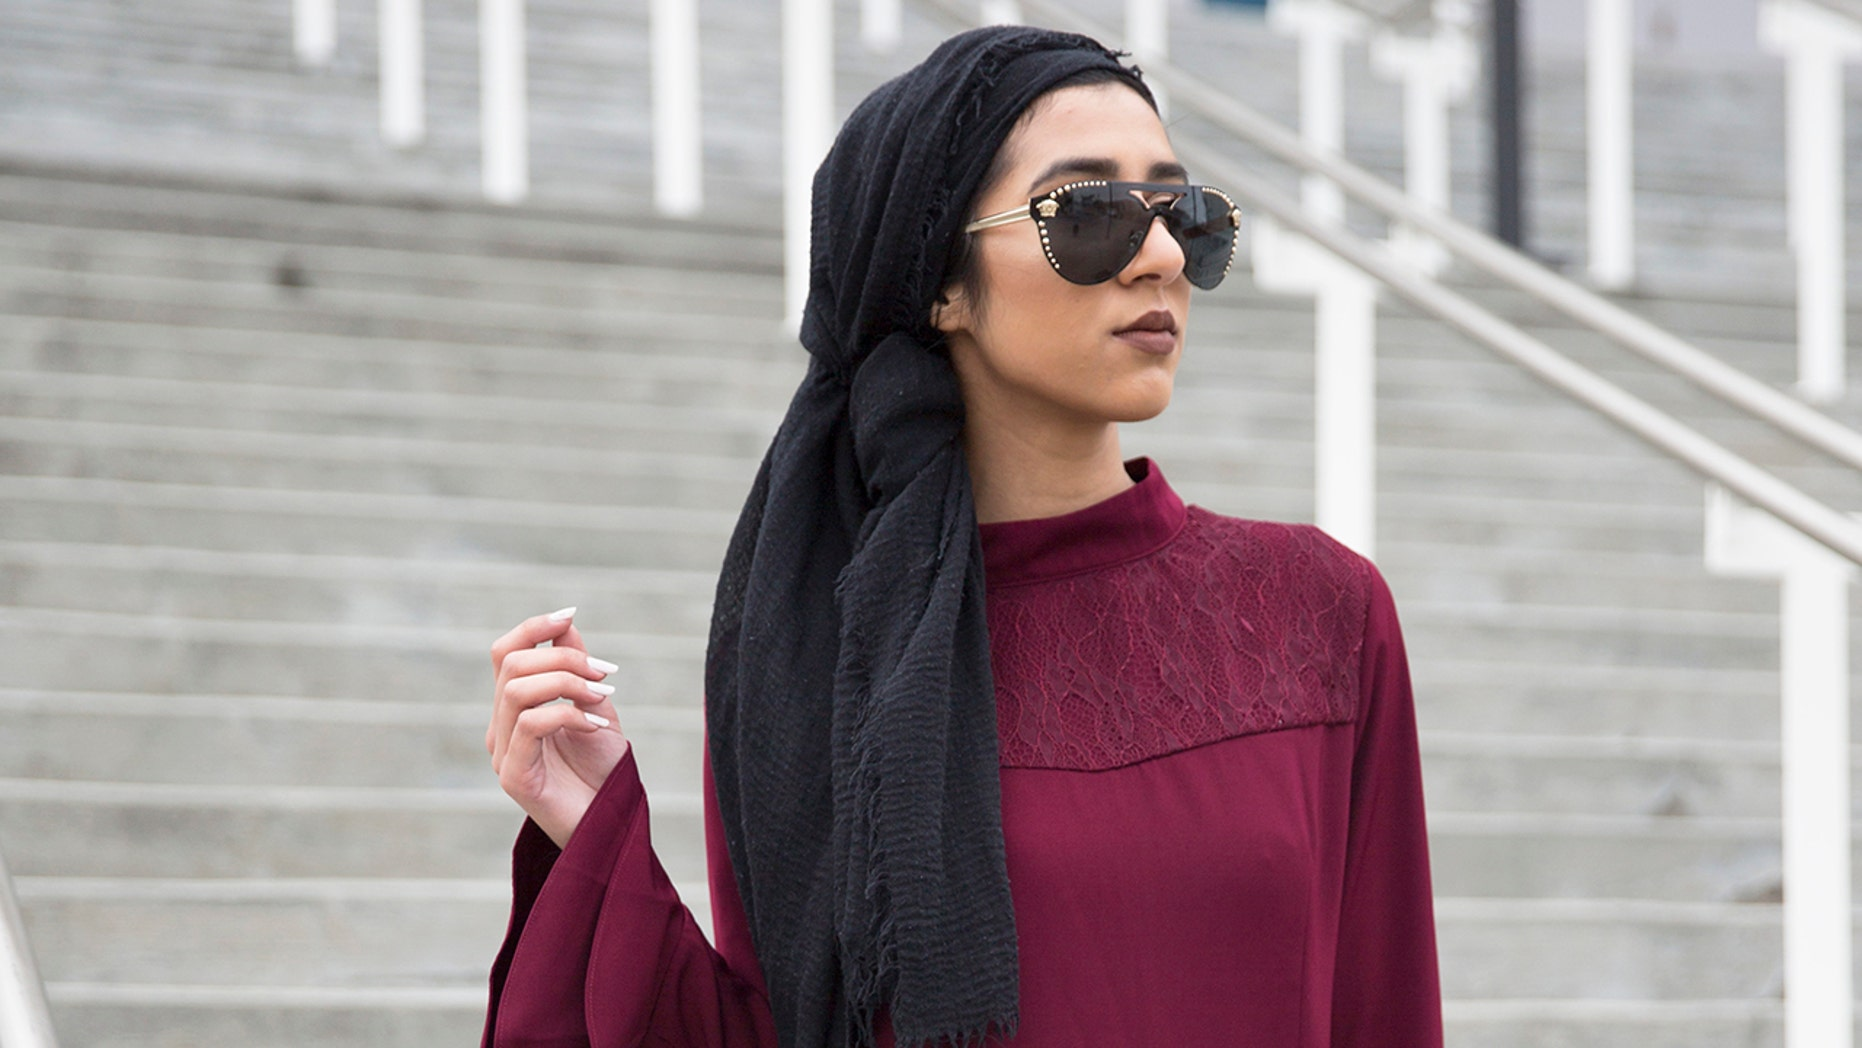 e46bd0212156 Macy's has come under fire for their recent collection featuring hijabs and  other modest Muslim-